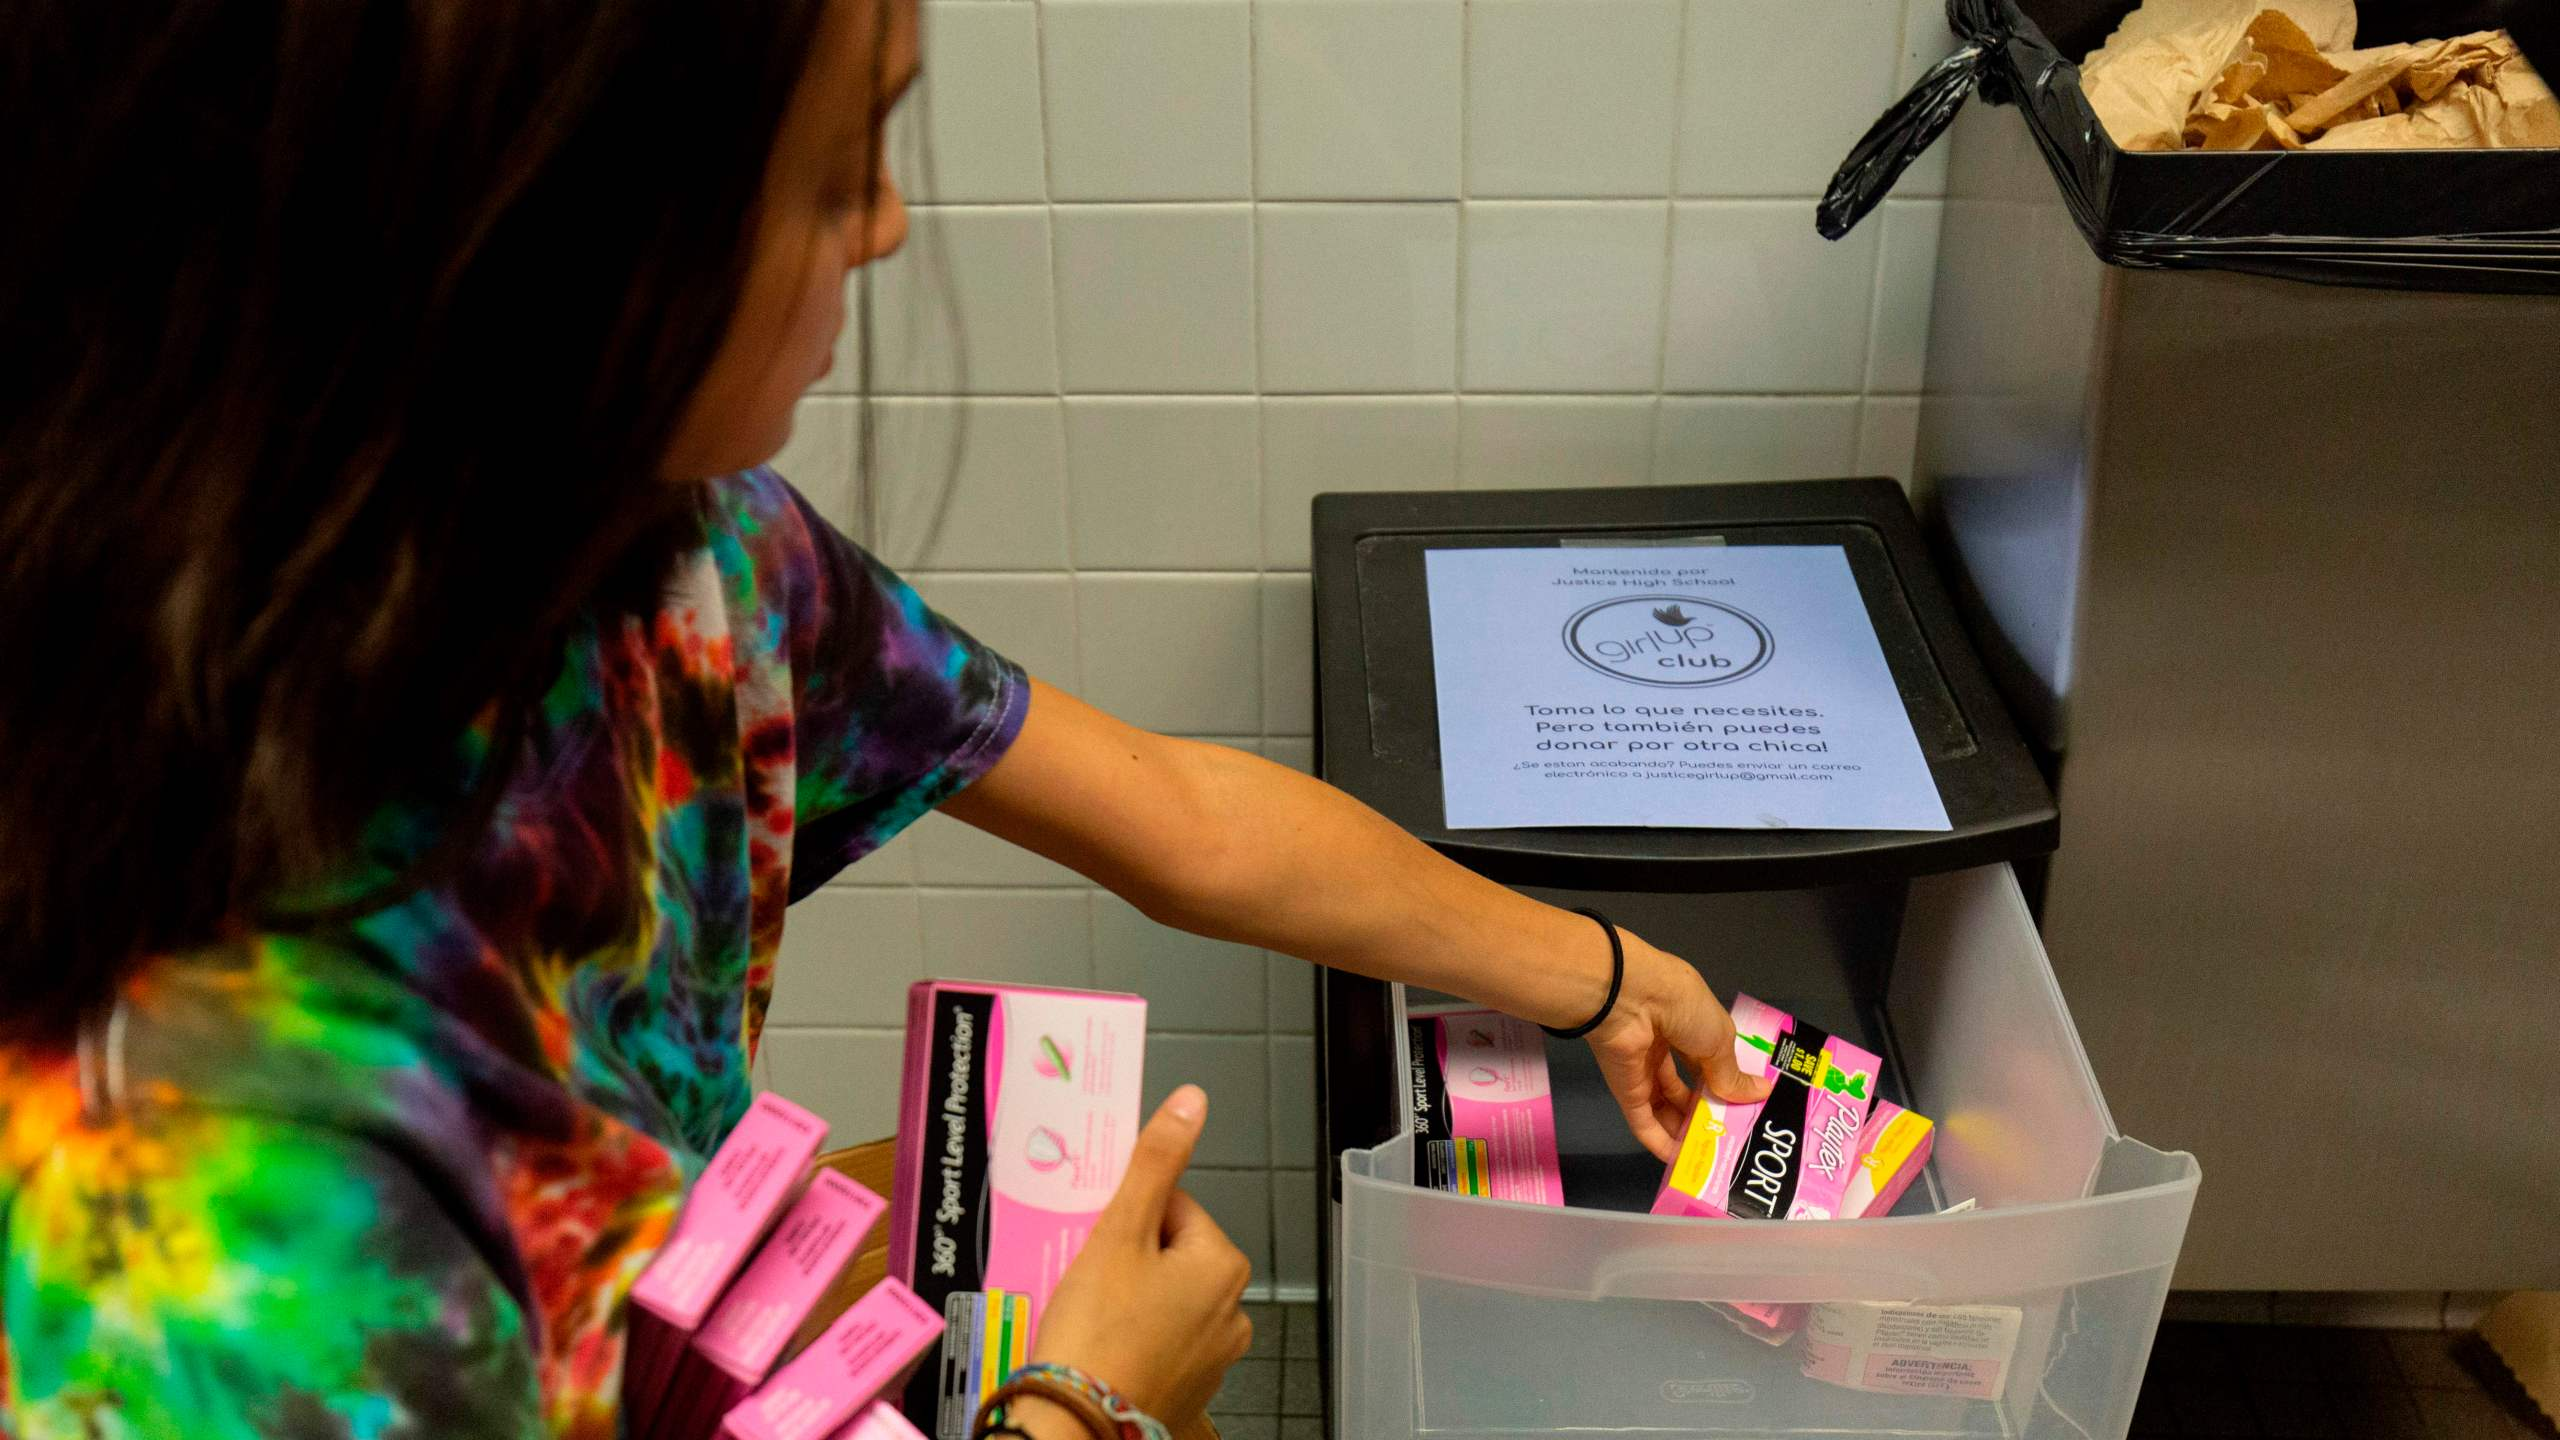 A student stocks a school bathroom with free pads and tampons to push for menstrual equity, at Justice High School in Falls Church, Virginia, on Sept. 11, 2019. (Credit: ALASTAIR PIKE/AFP via Getty Images)